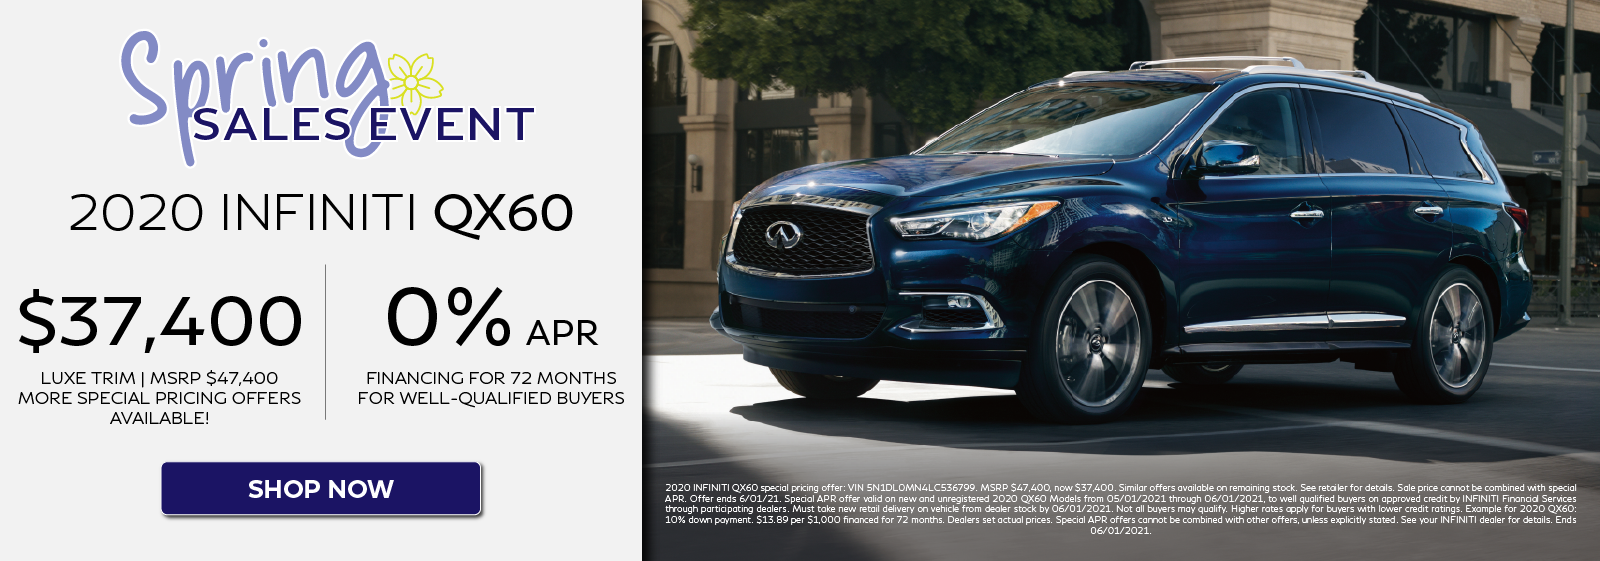 2020 QX60 Special APR & Pricing Offer. Click to shop now.